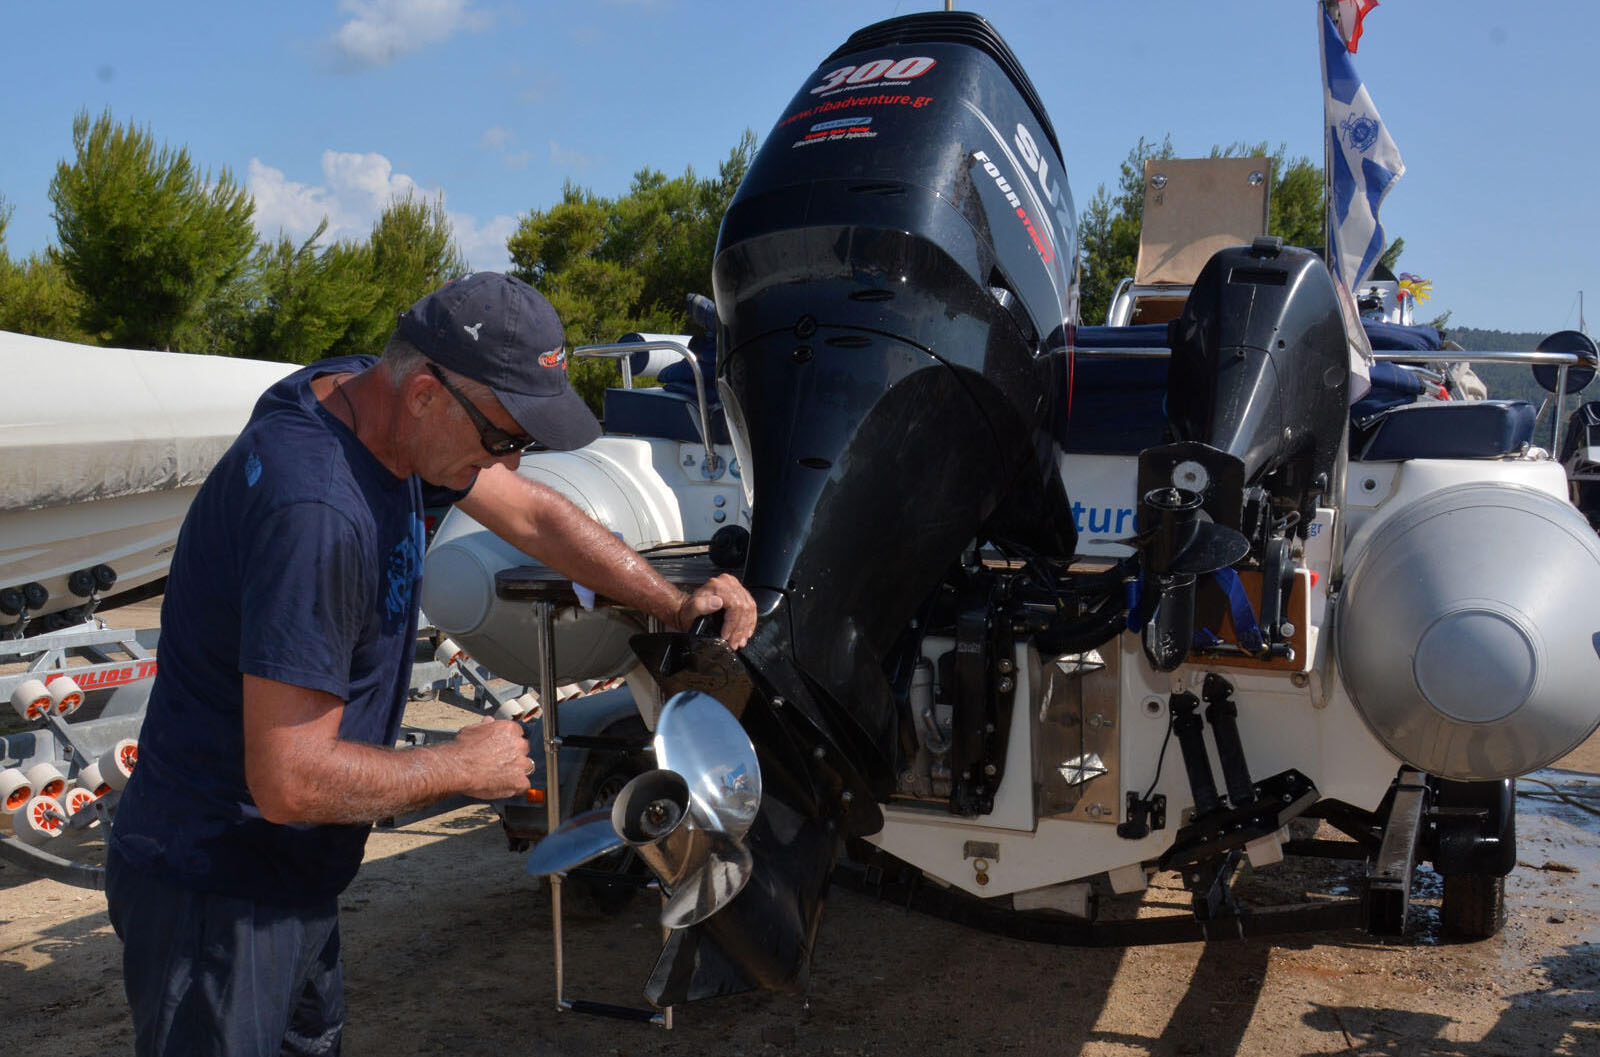 Winterizing your Rib and Outboard Engines – Part I